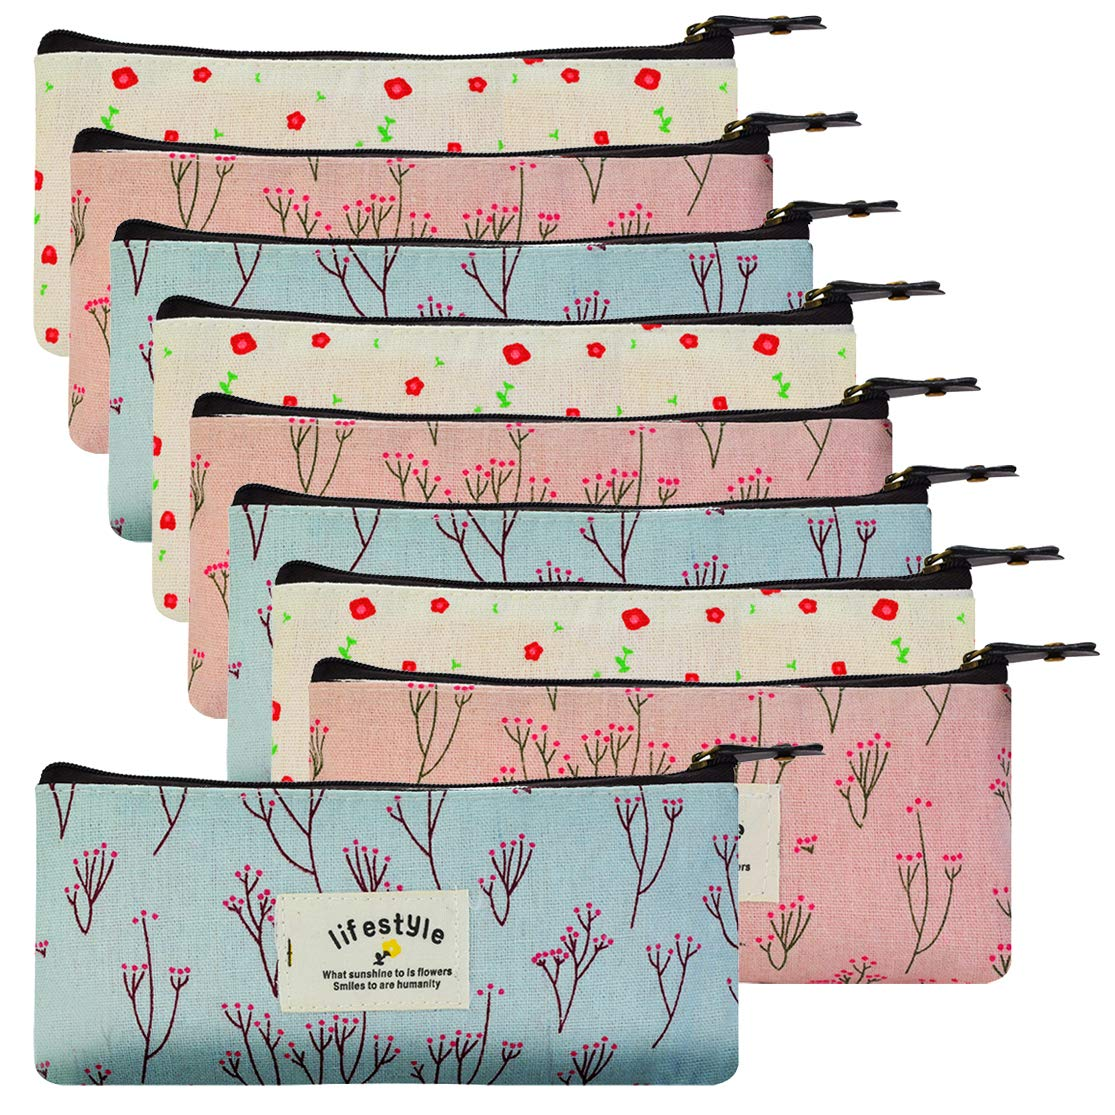 SUMERSHA 9pcs Countryside Flower Floral Pencil Pen Case Cosmetic Makeup Bag